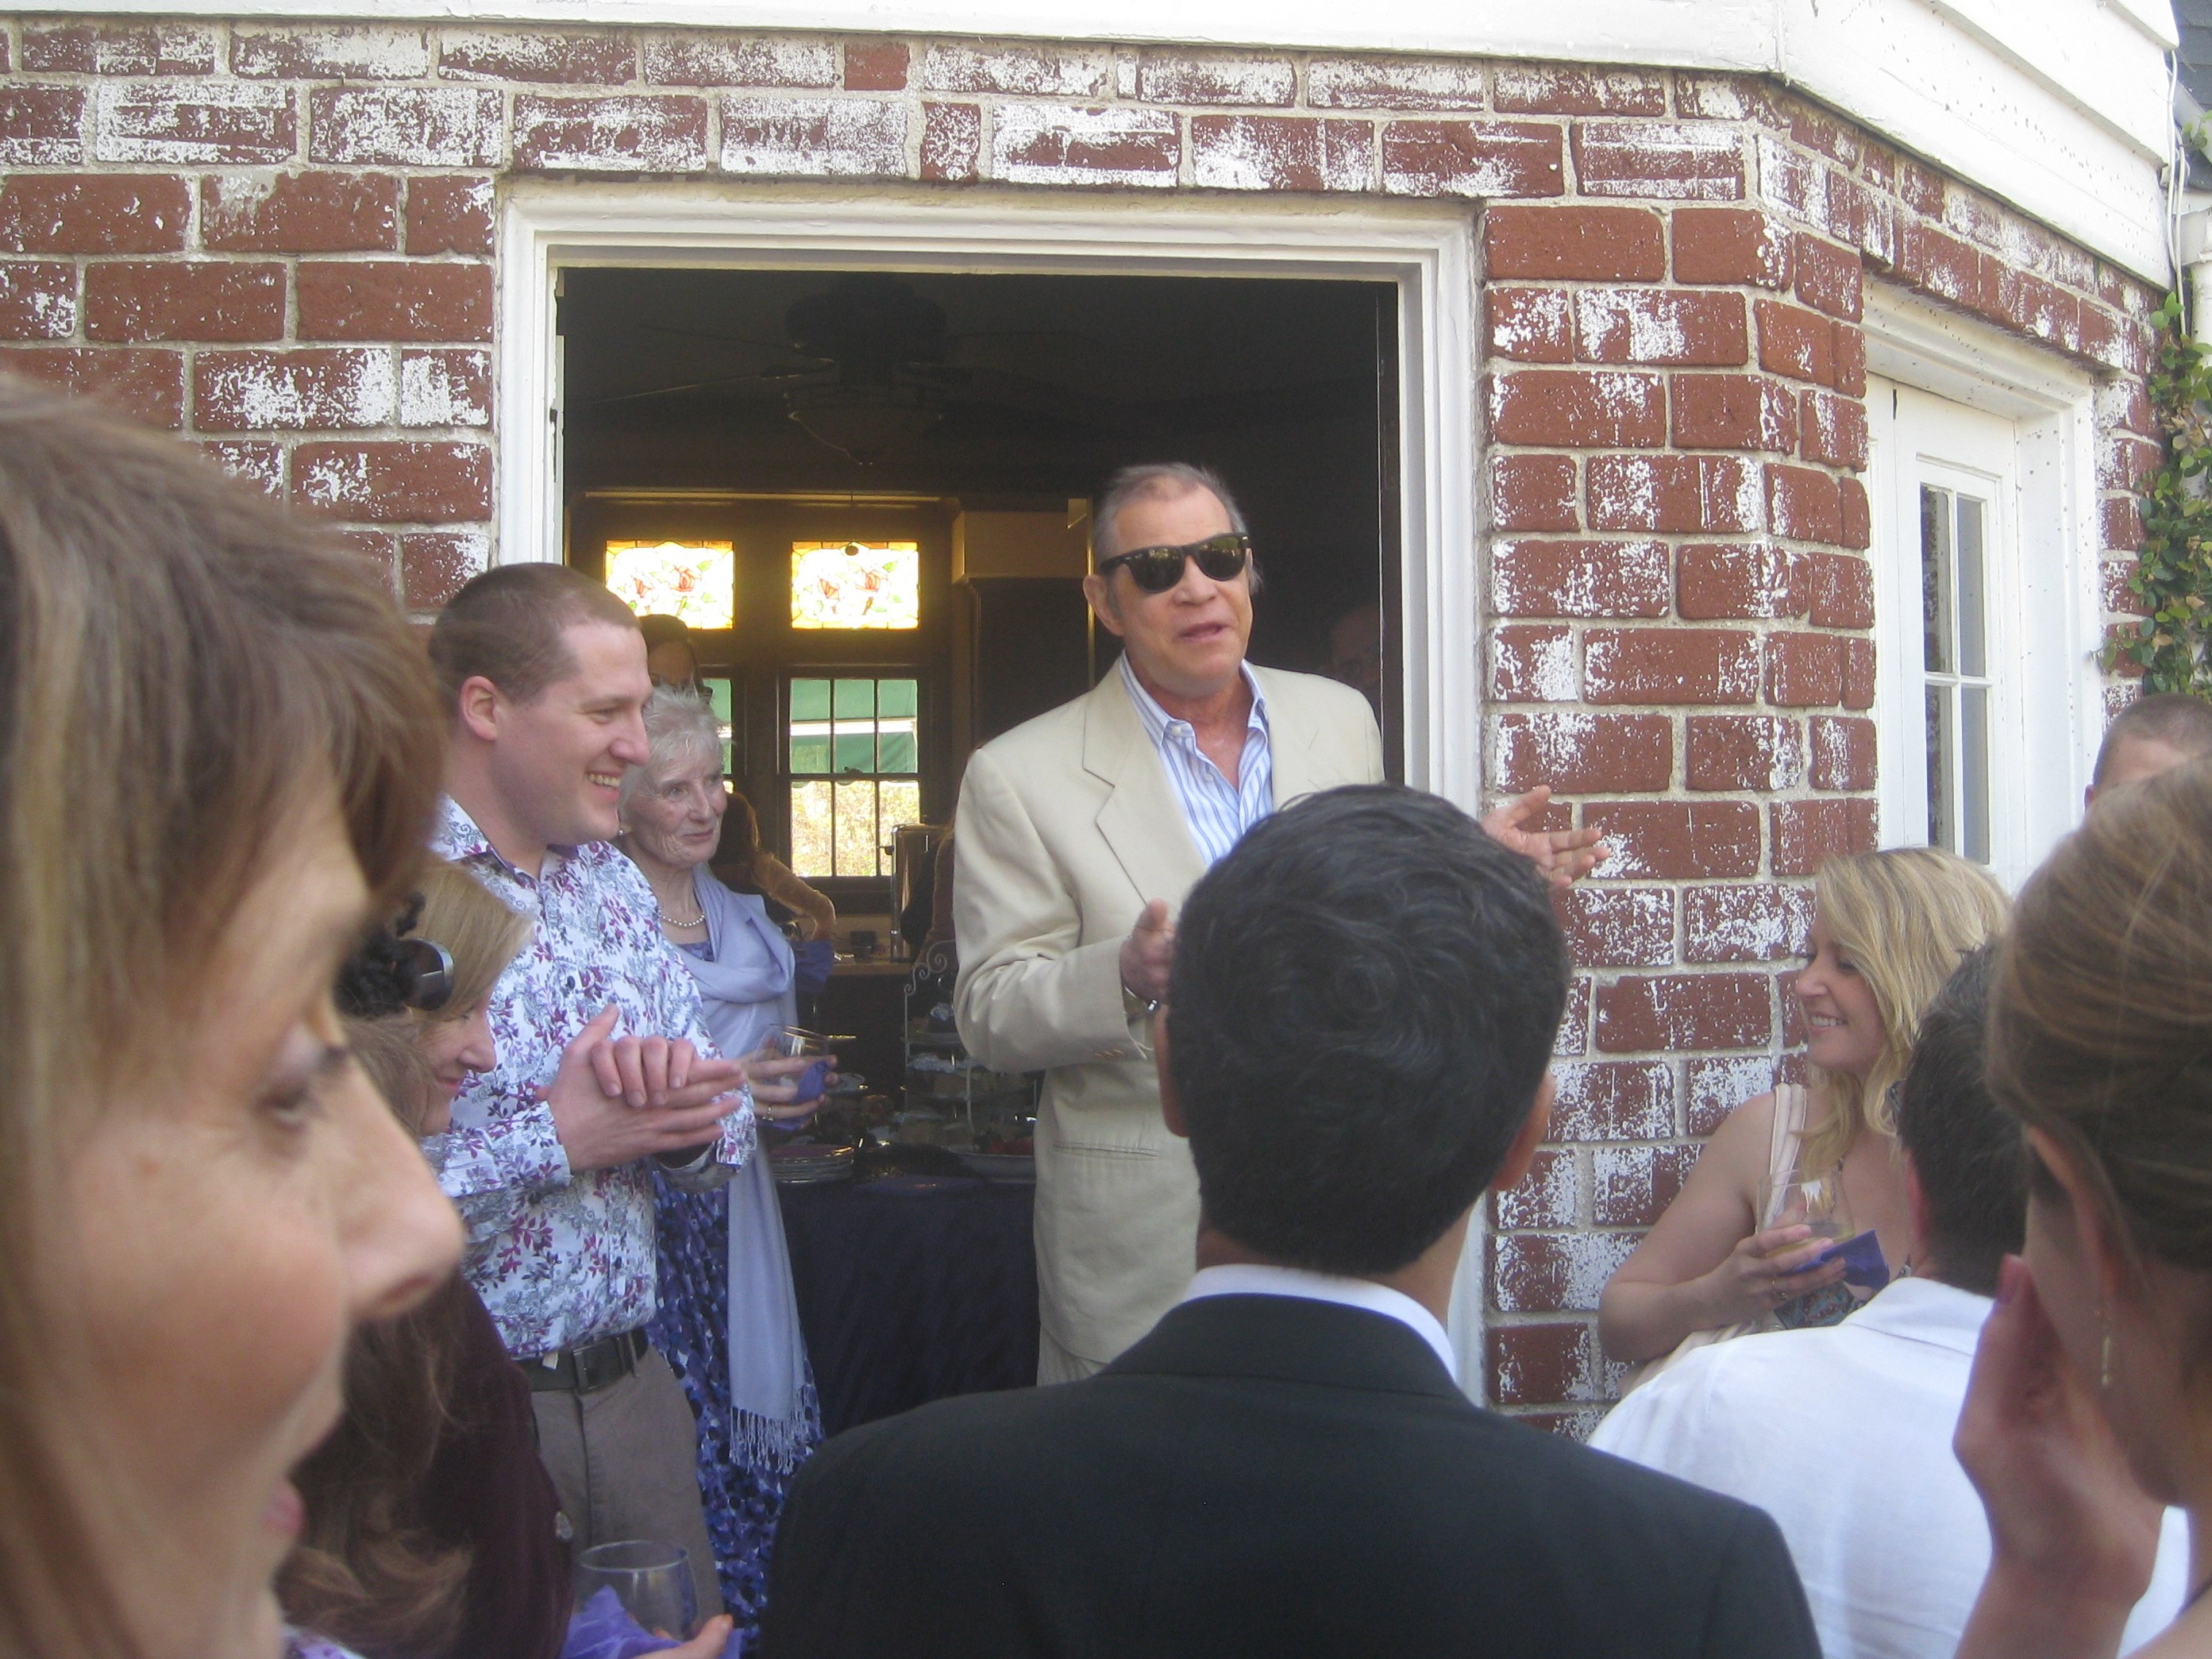 Actor Michael York had us in stitches over the story of joining Equity